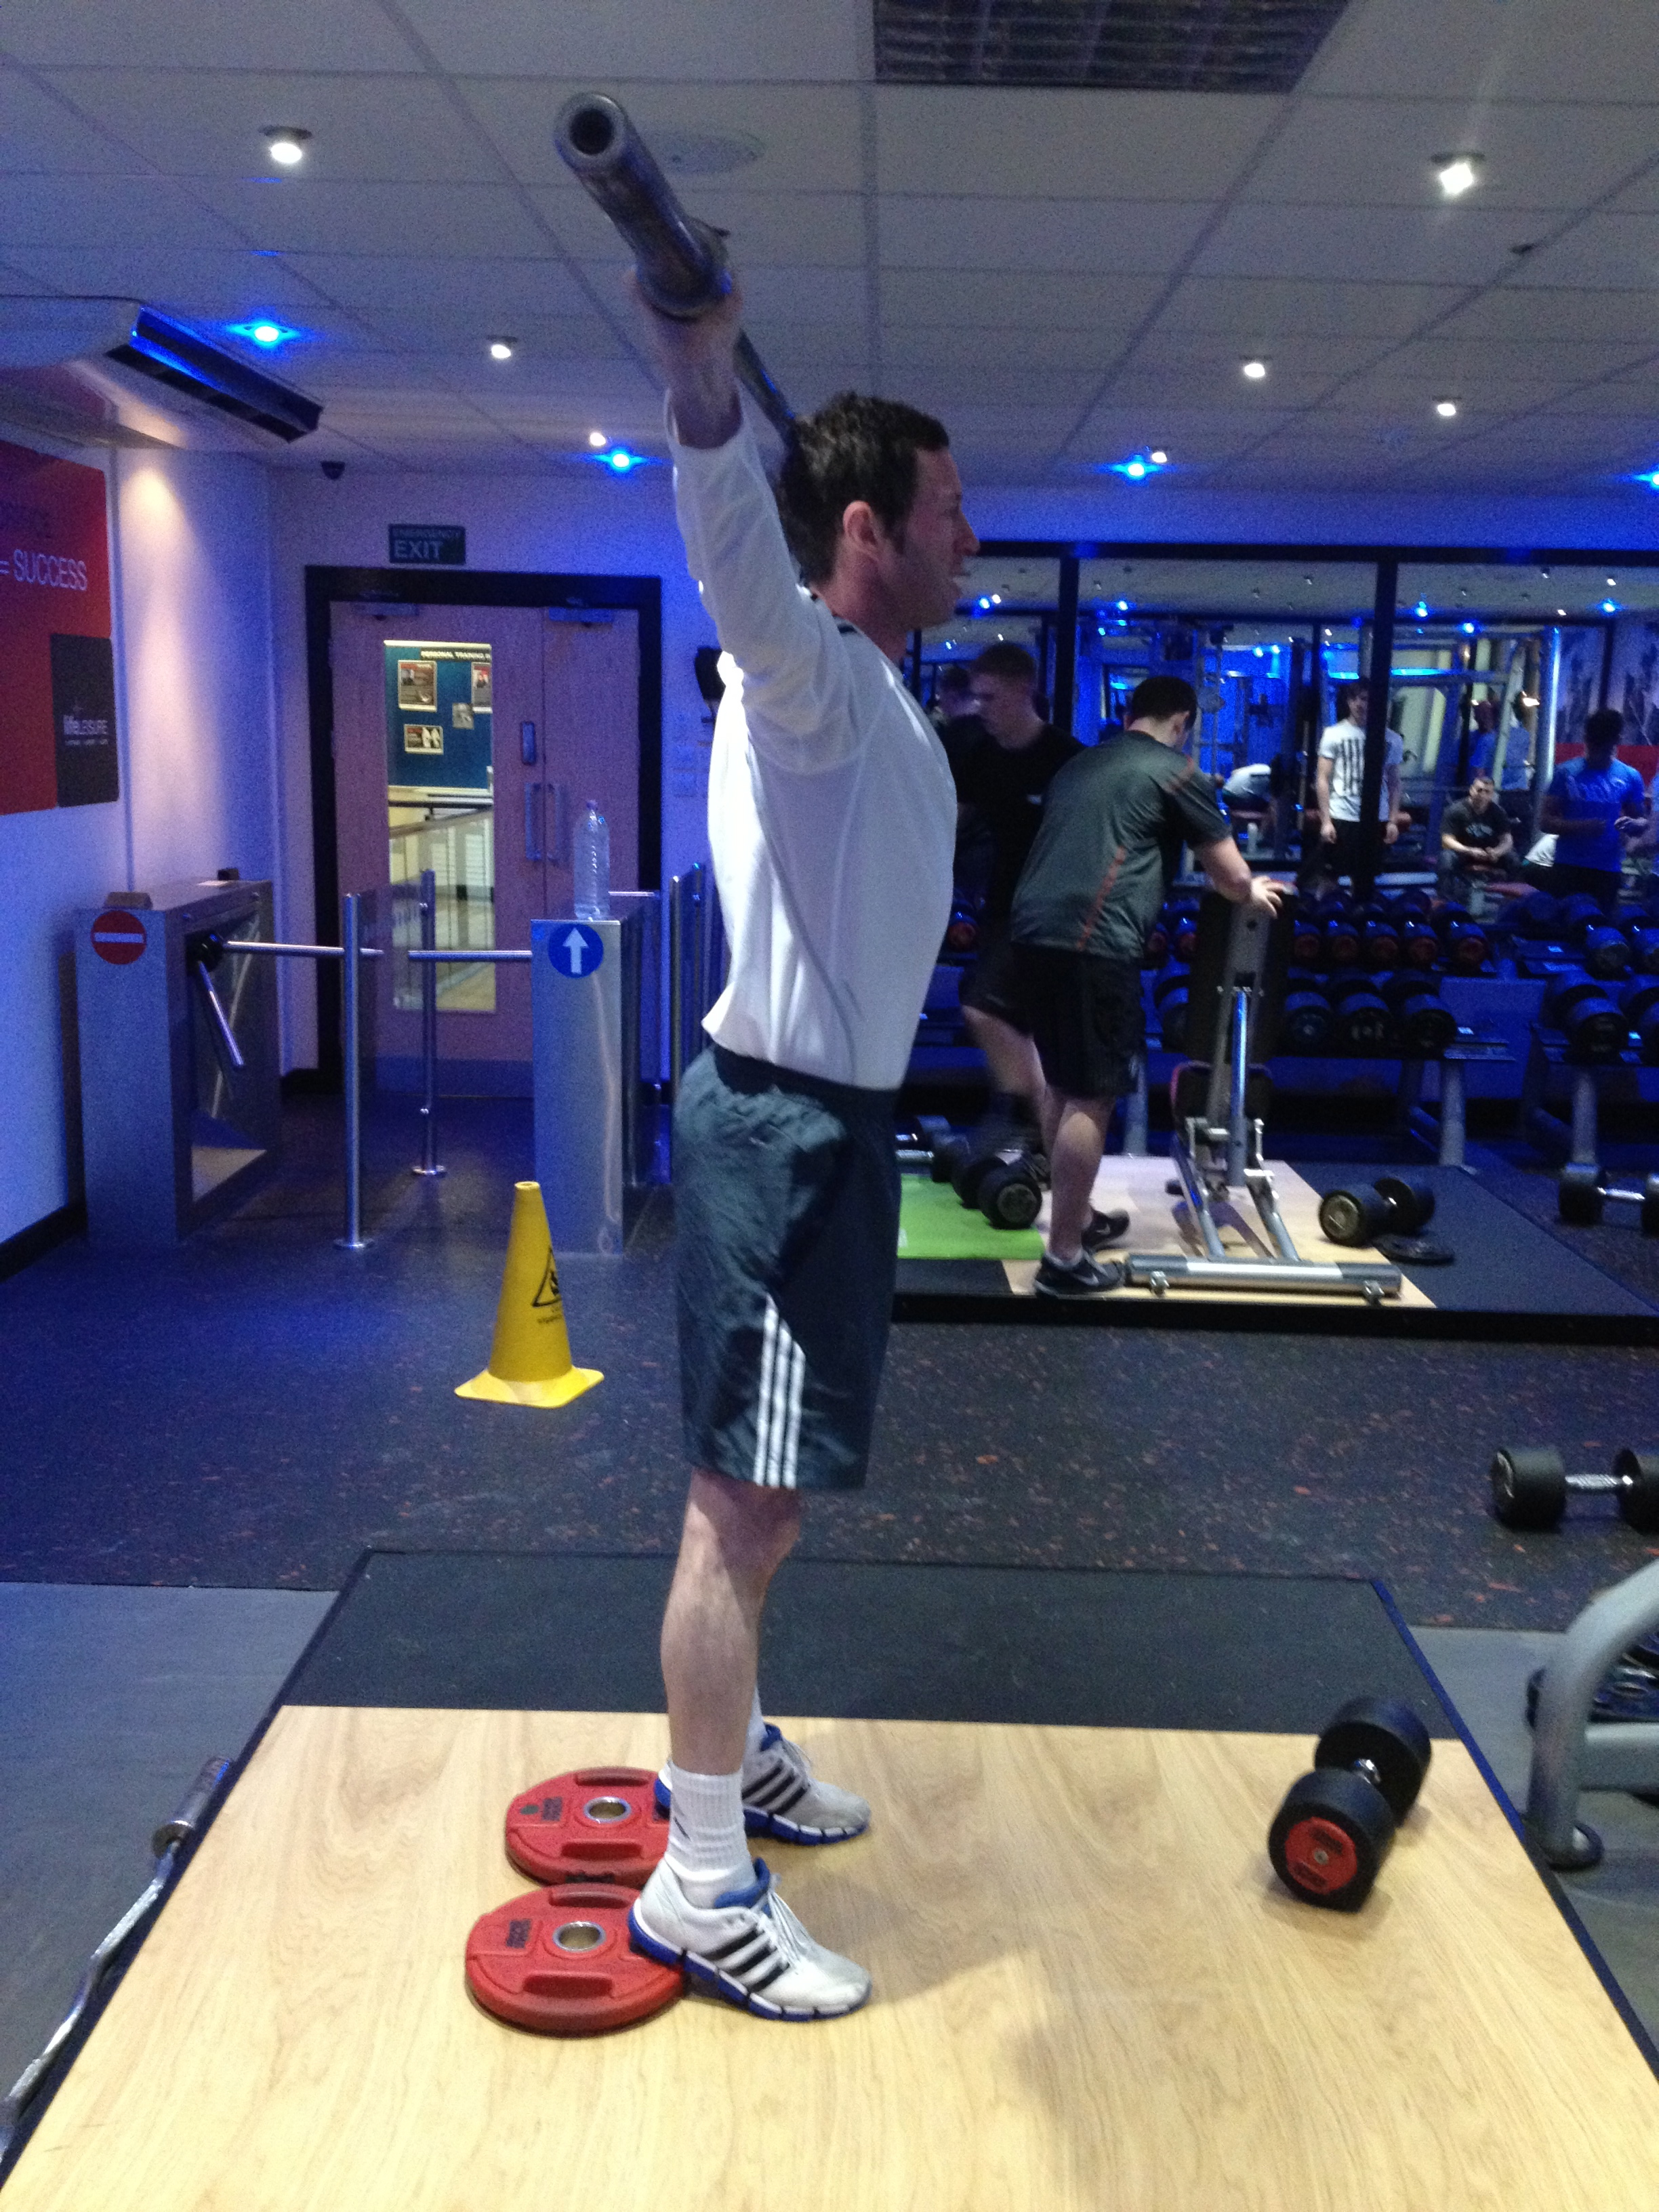 Effective Leg Training, www.hoylesfitness.com, Personal Trainer Stockport, Personal Trainer Wilmslow, Personal Trainer Alderley Edge, Overhead Squat Technique